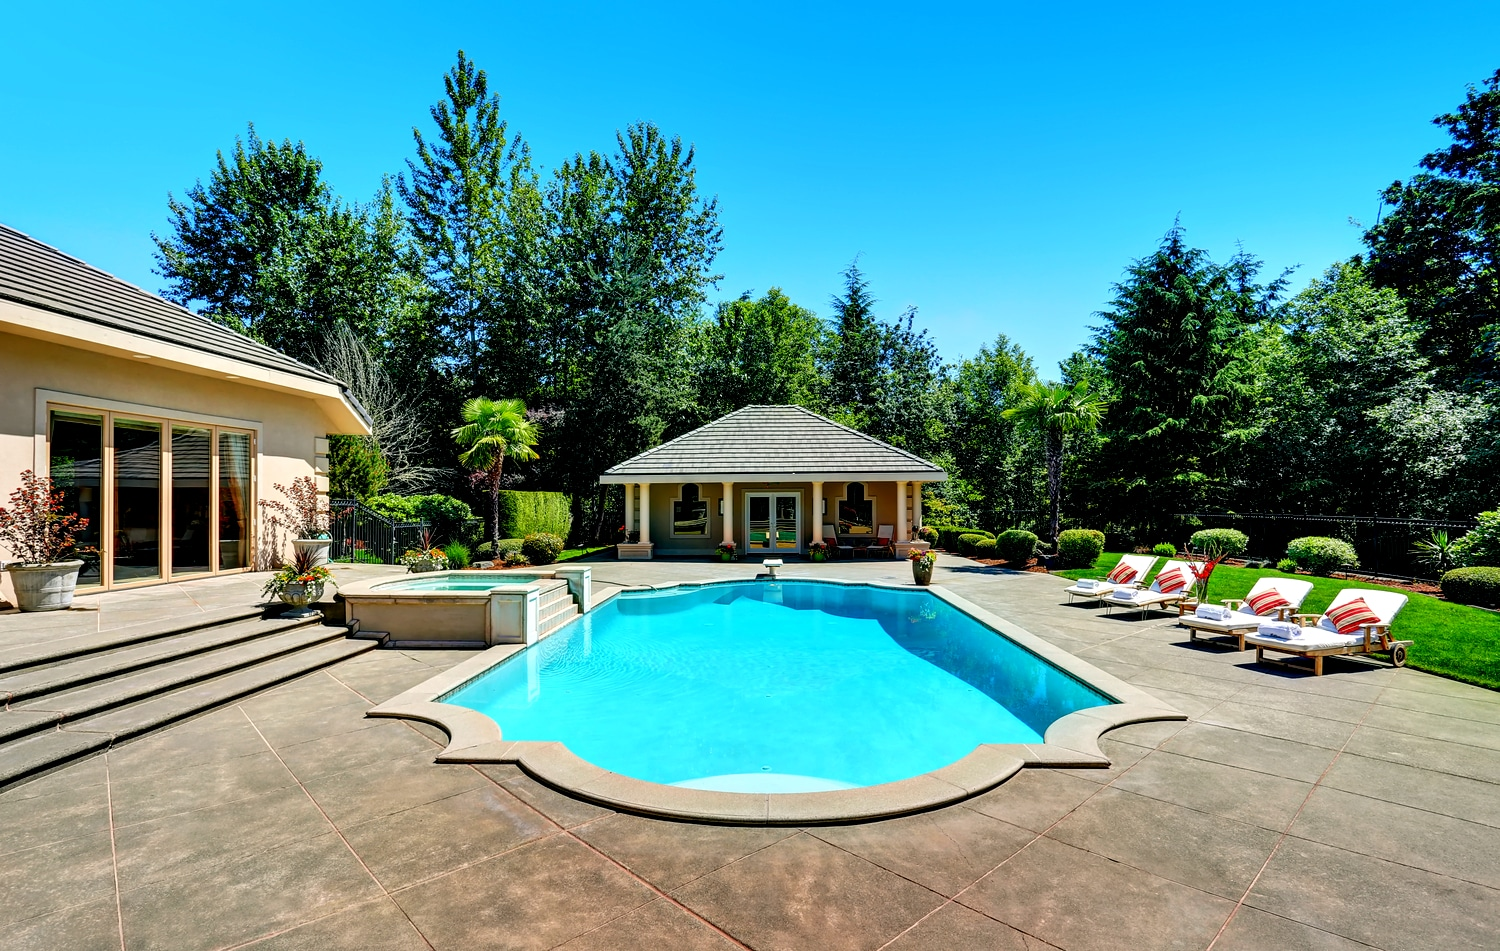 Pool Designs | Pool Plans | How to Build a Swimming Pool